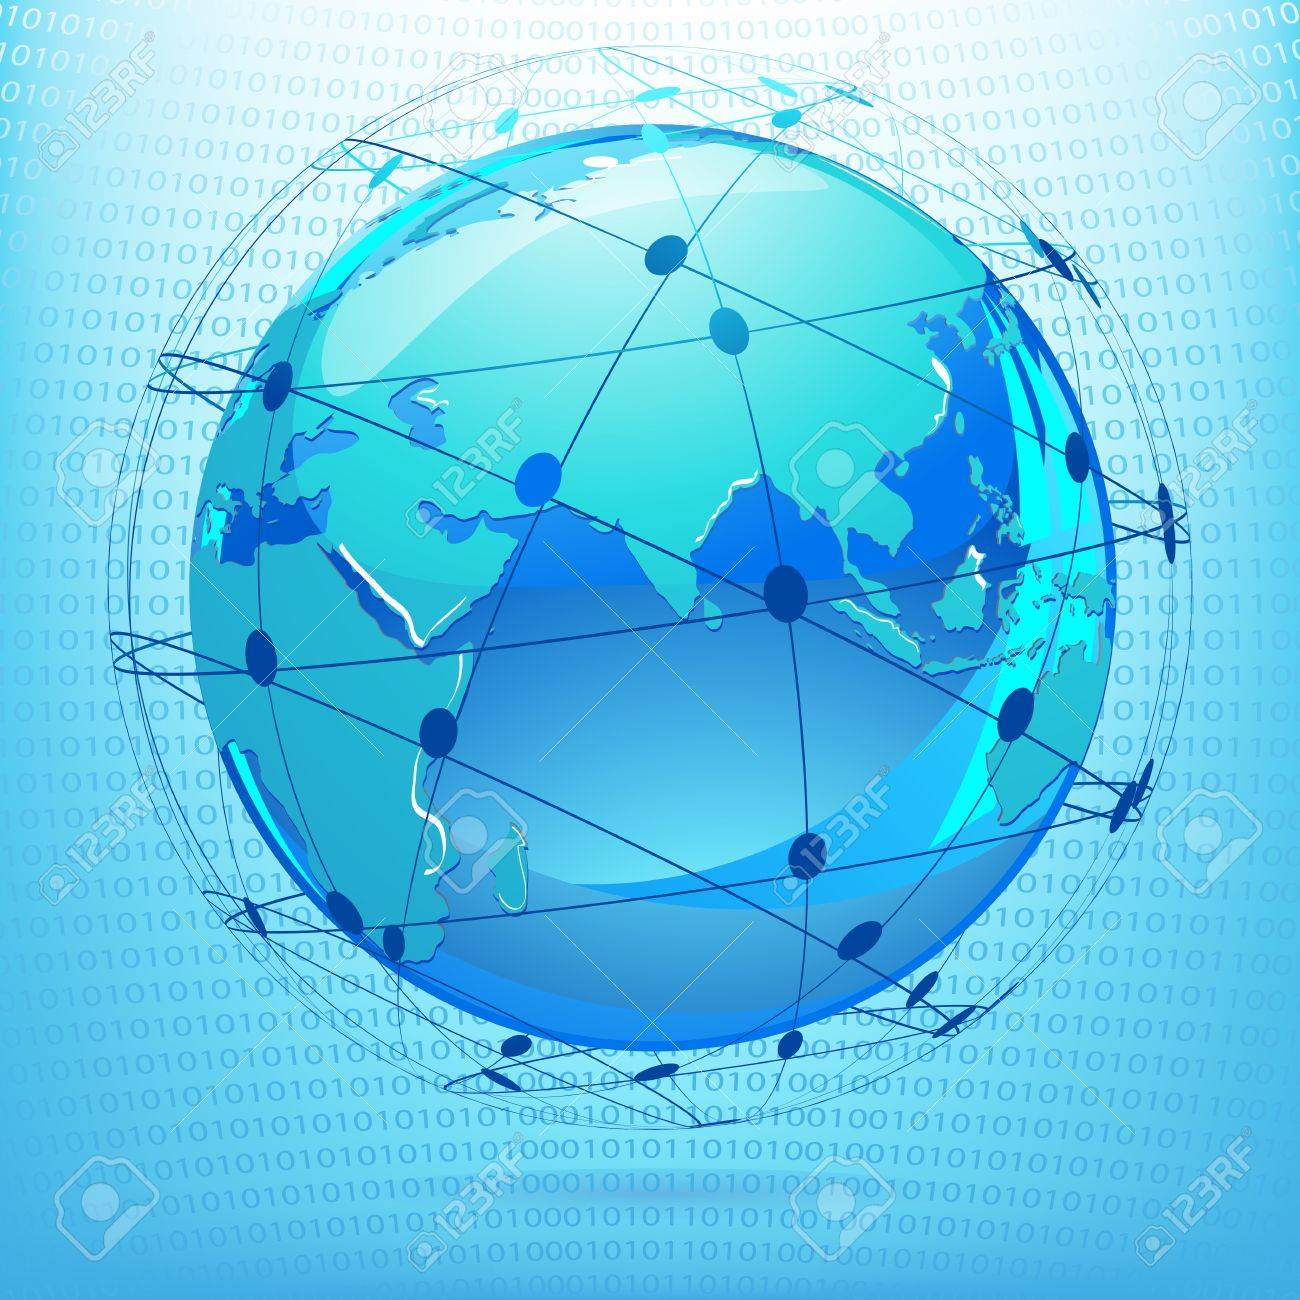 illustration of globe showing networking on binary background Stock Photo - 9736516